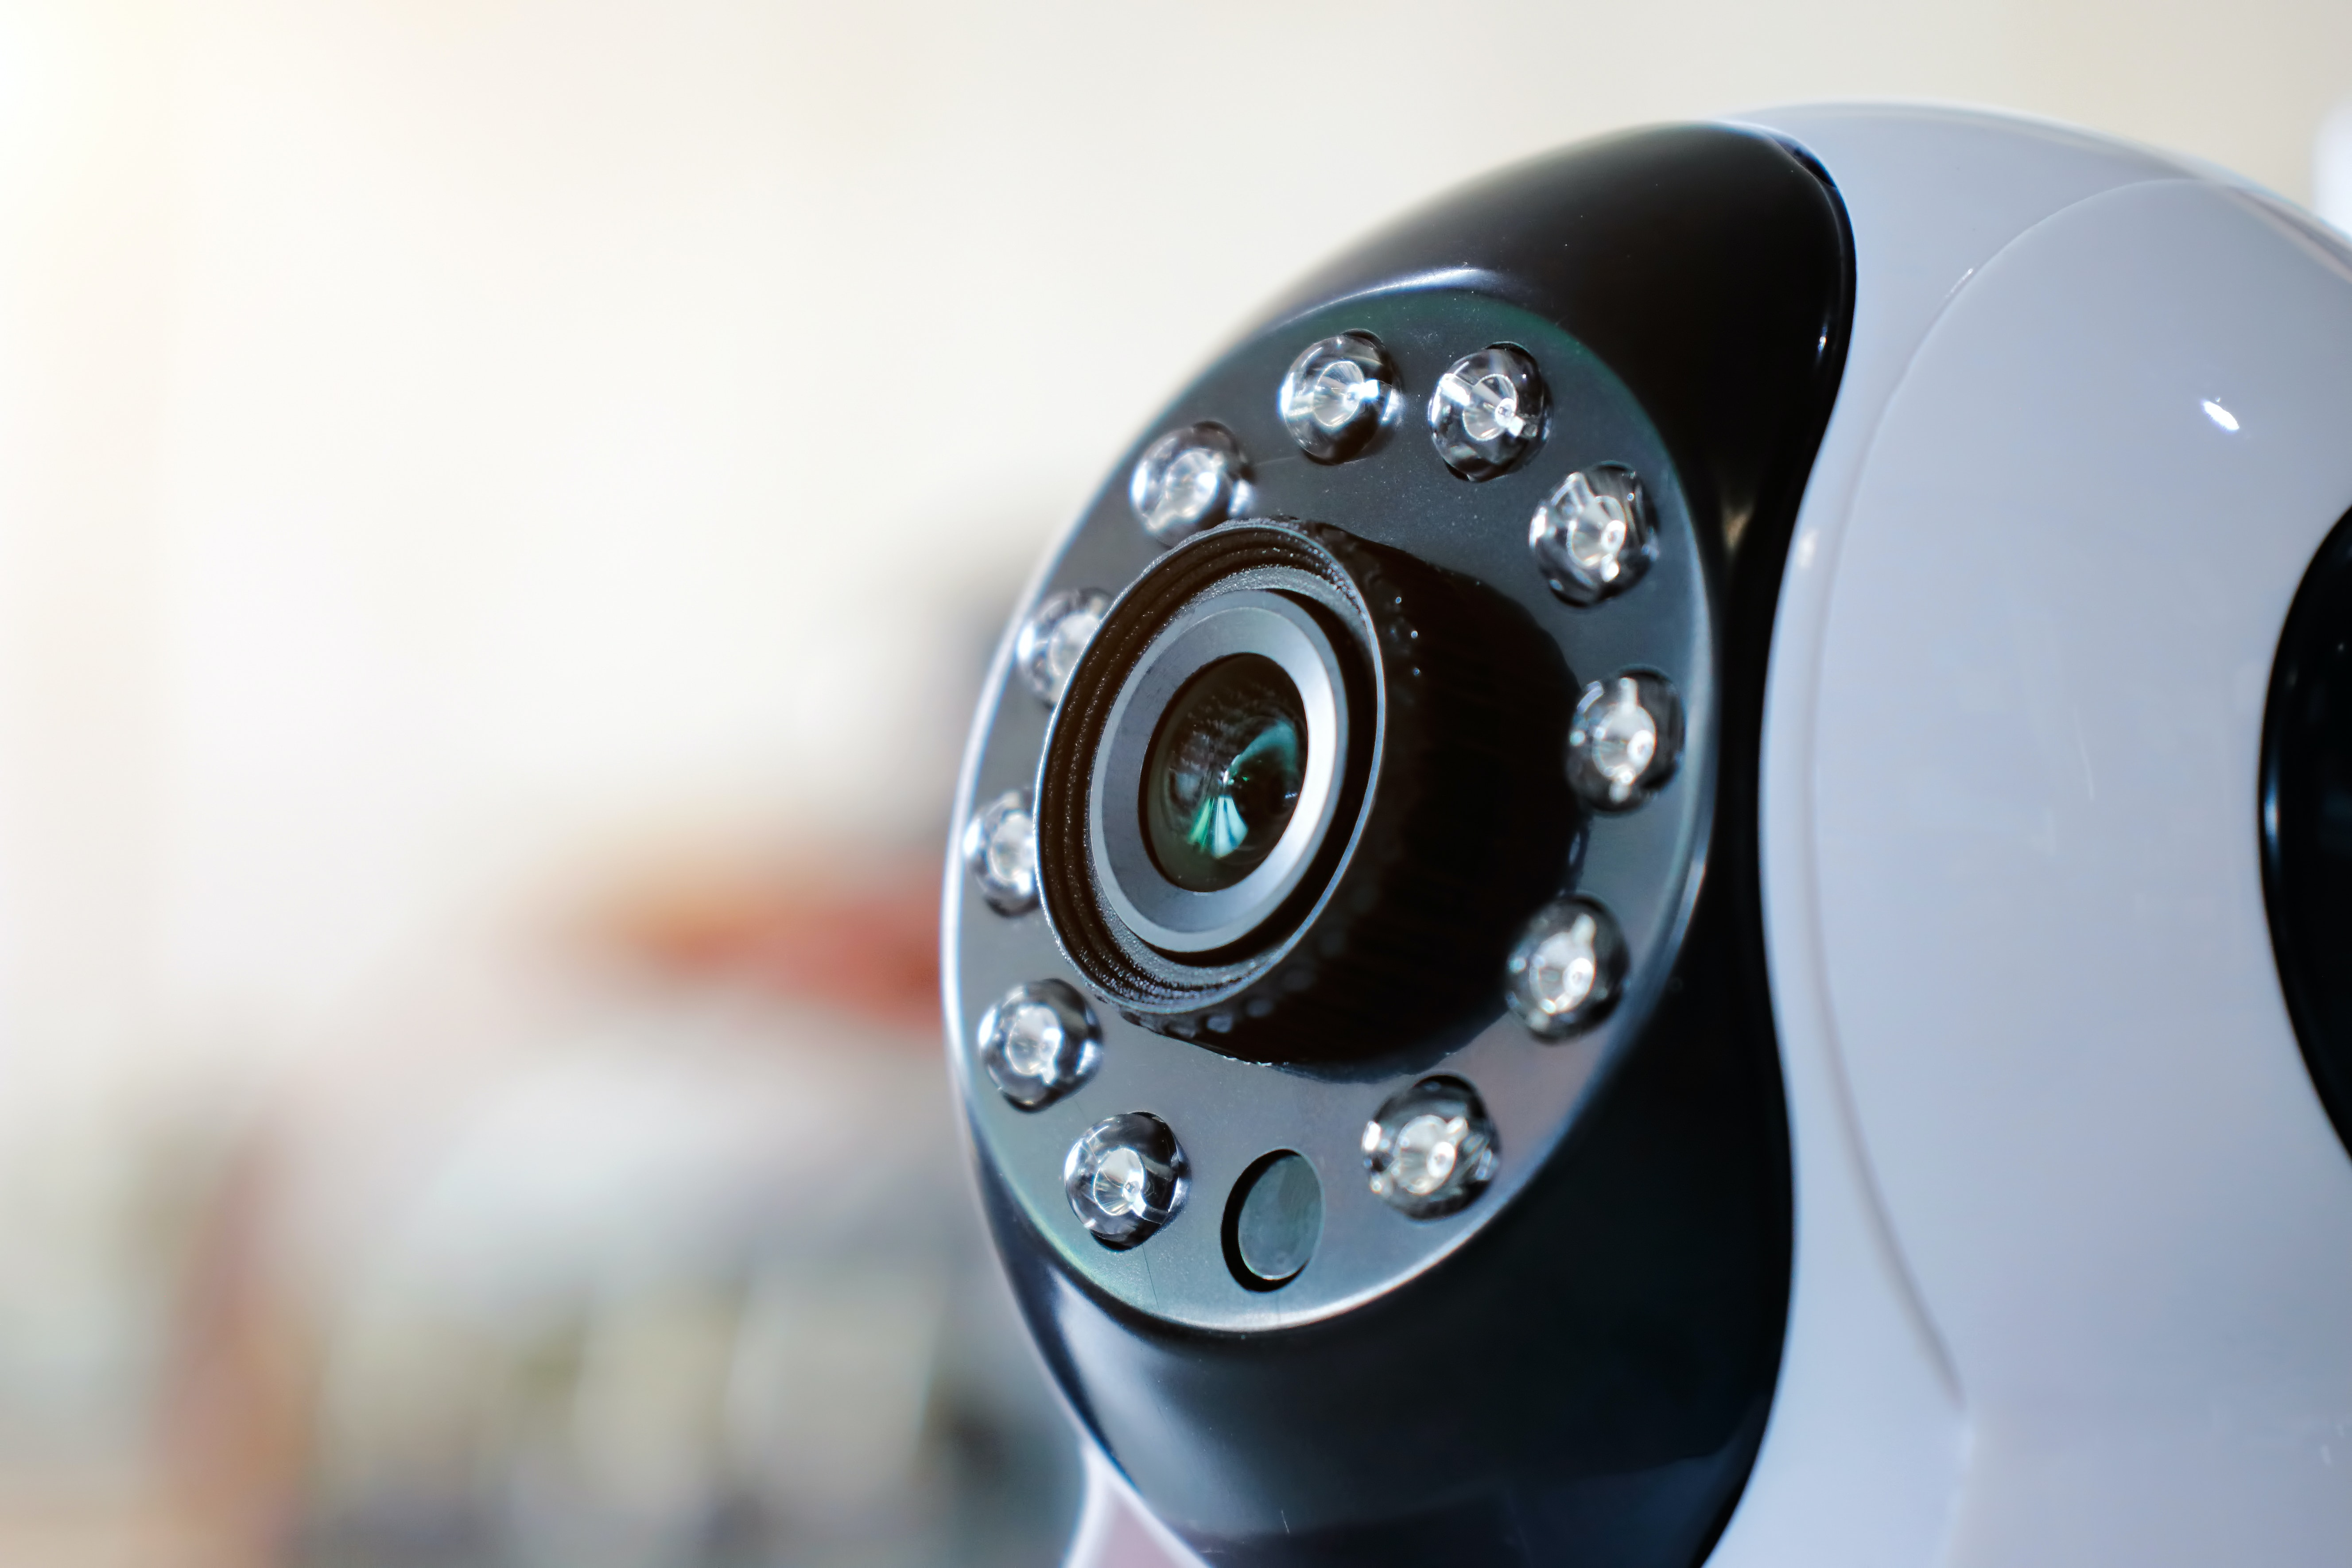 Charter is killing its home security service, and taking owners' devices with it